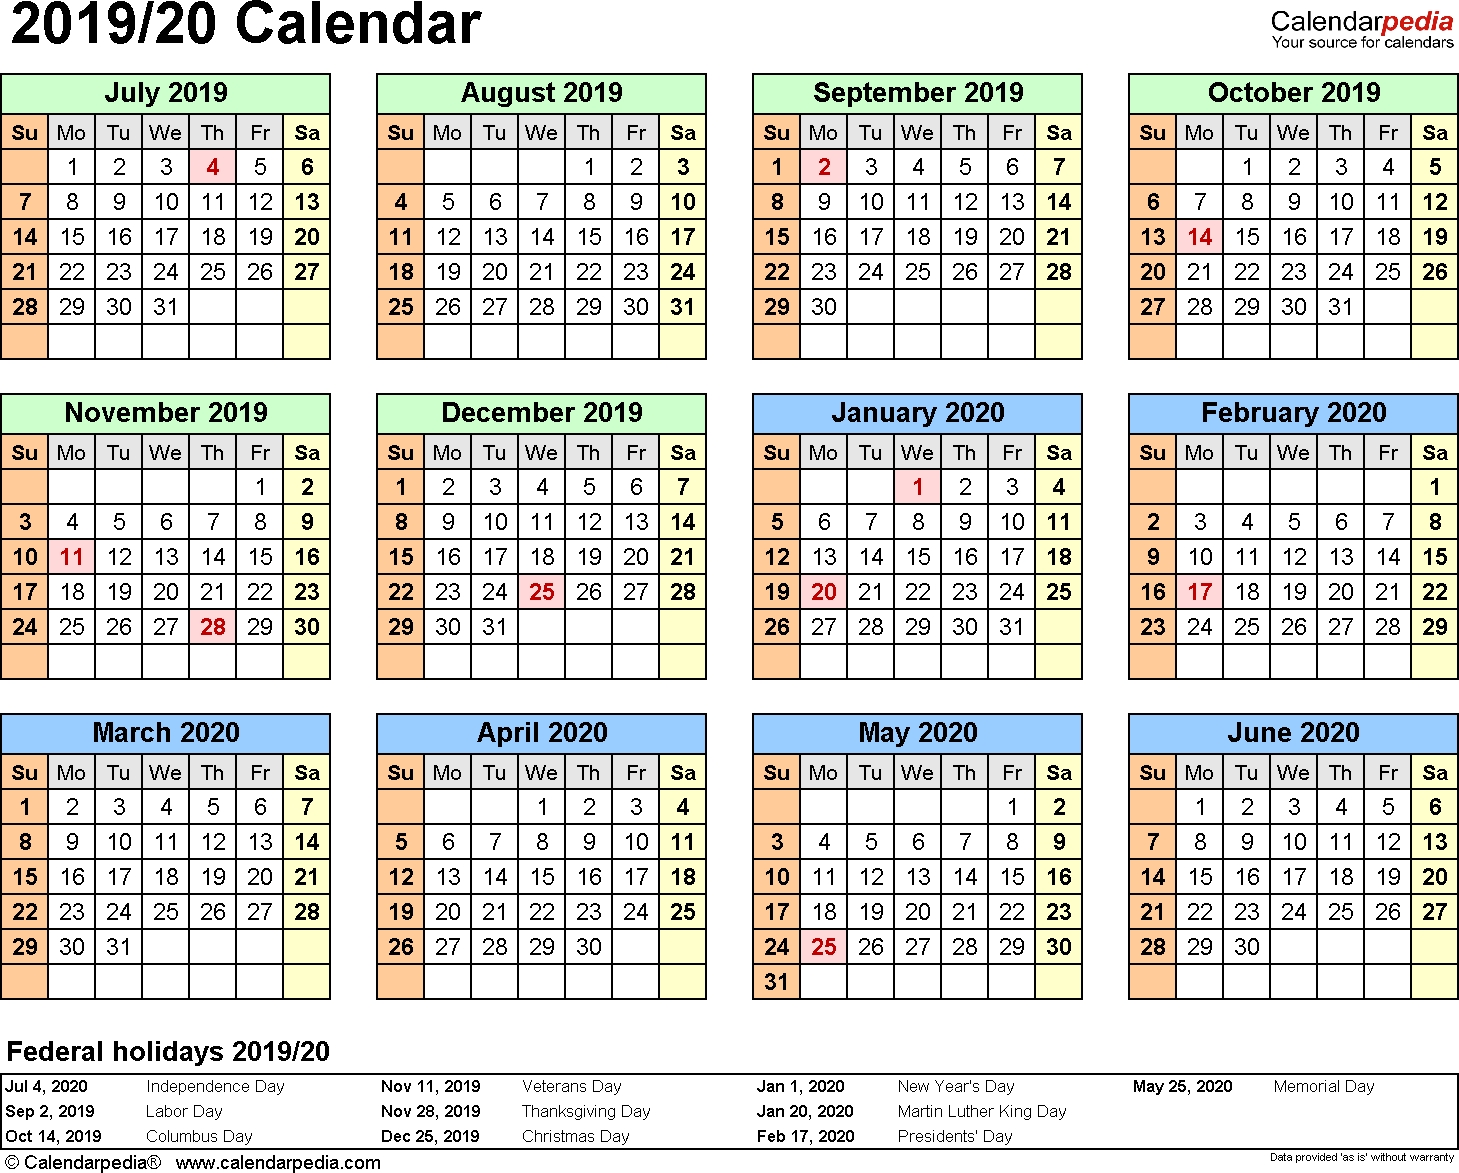 Split Year Calendars 2019/2020 (July To June) - Pdf Templates in 2020 Fiscal Calendar To Print